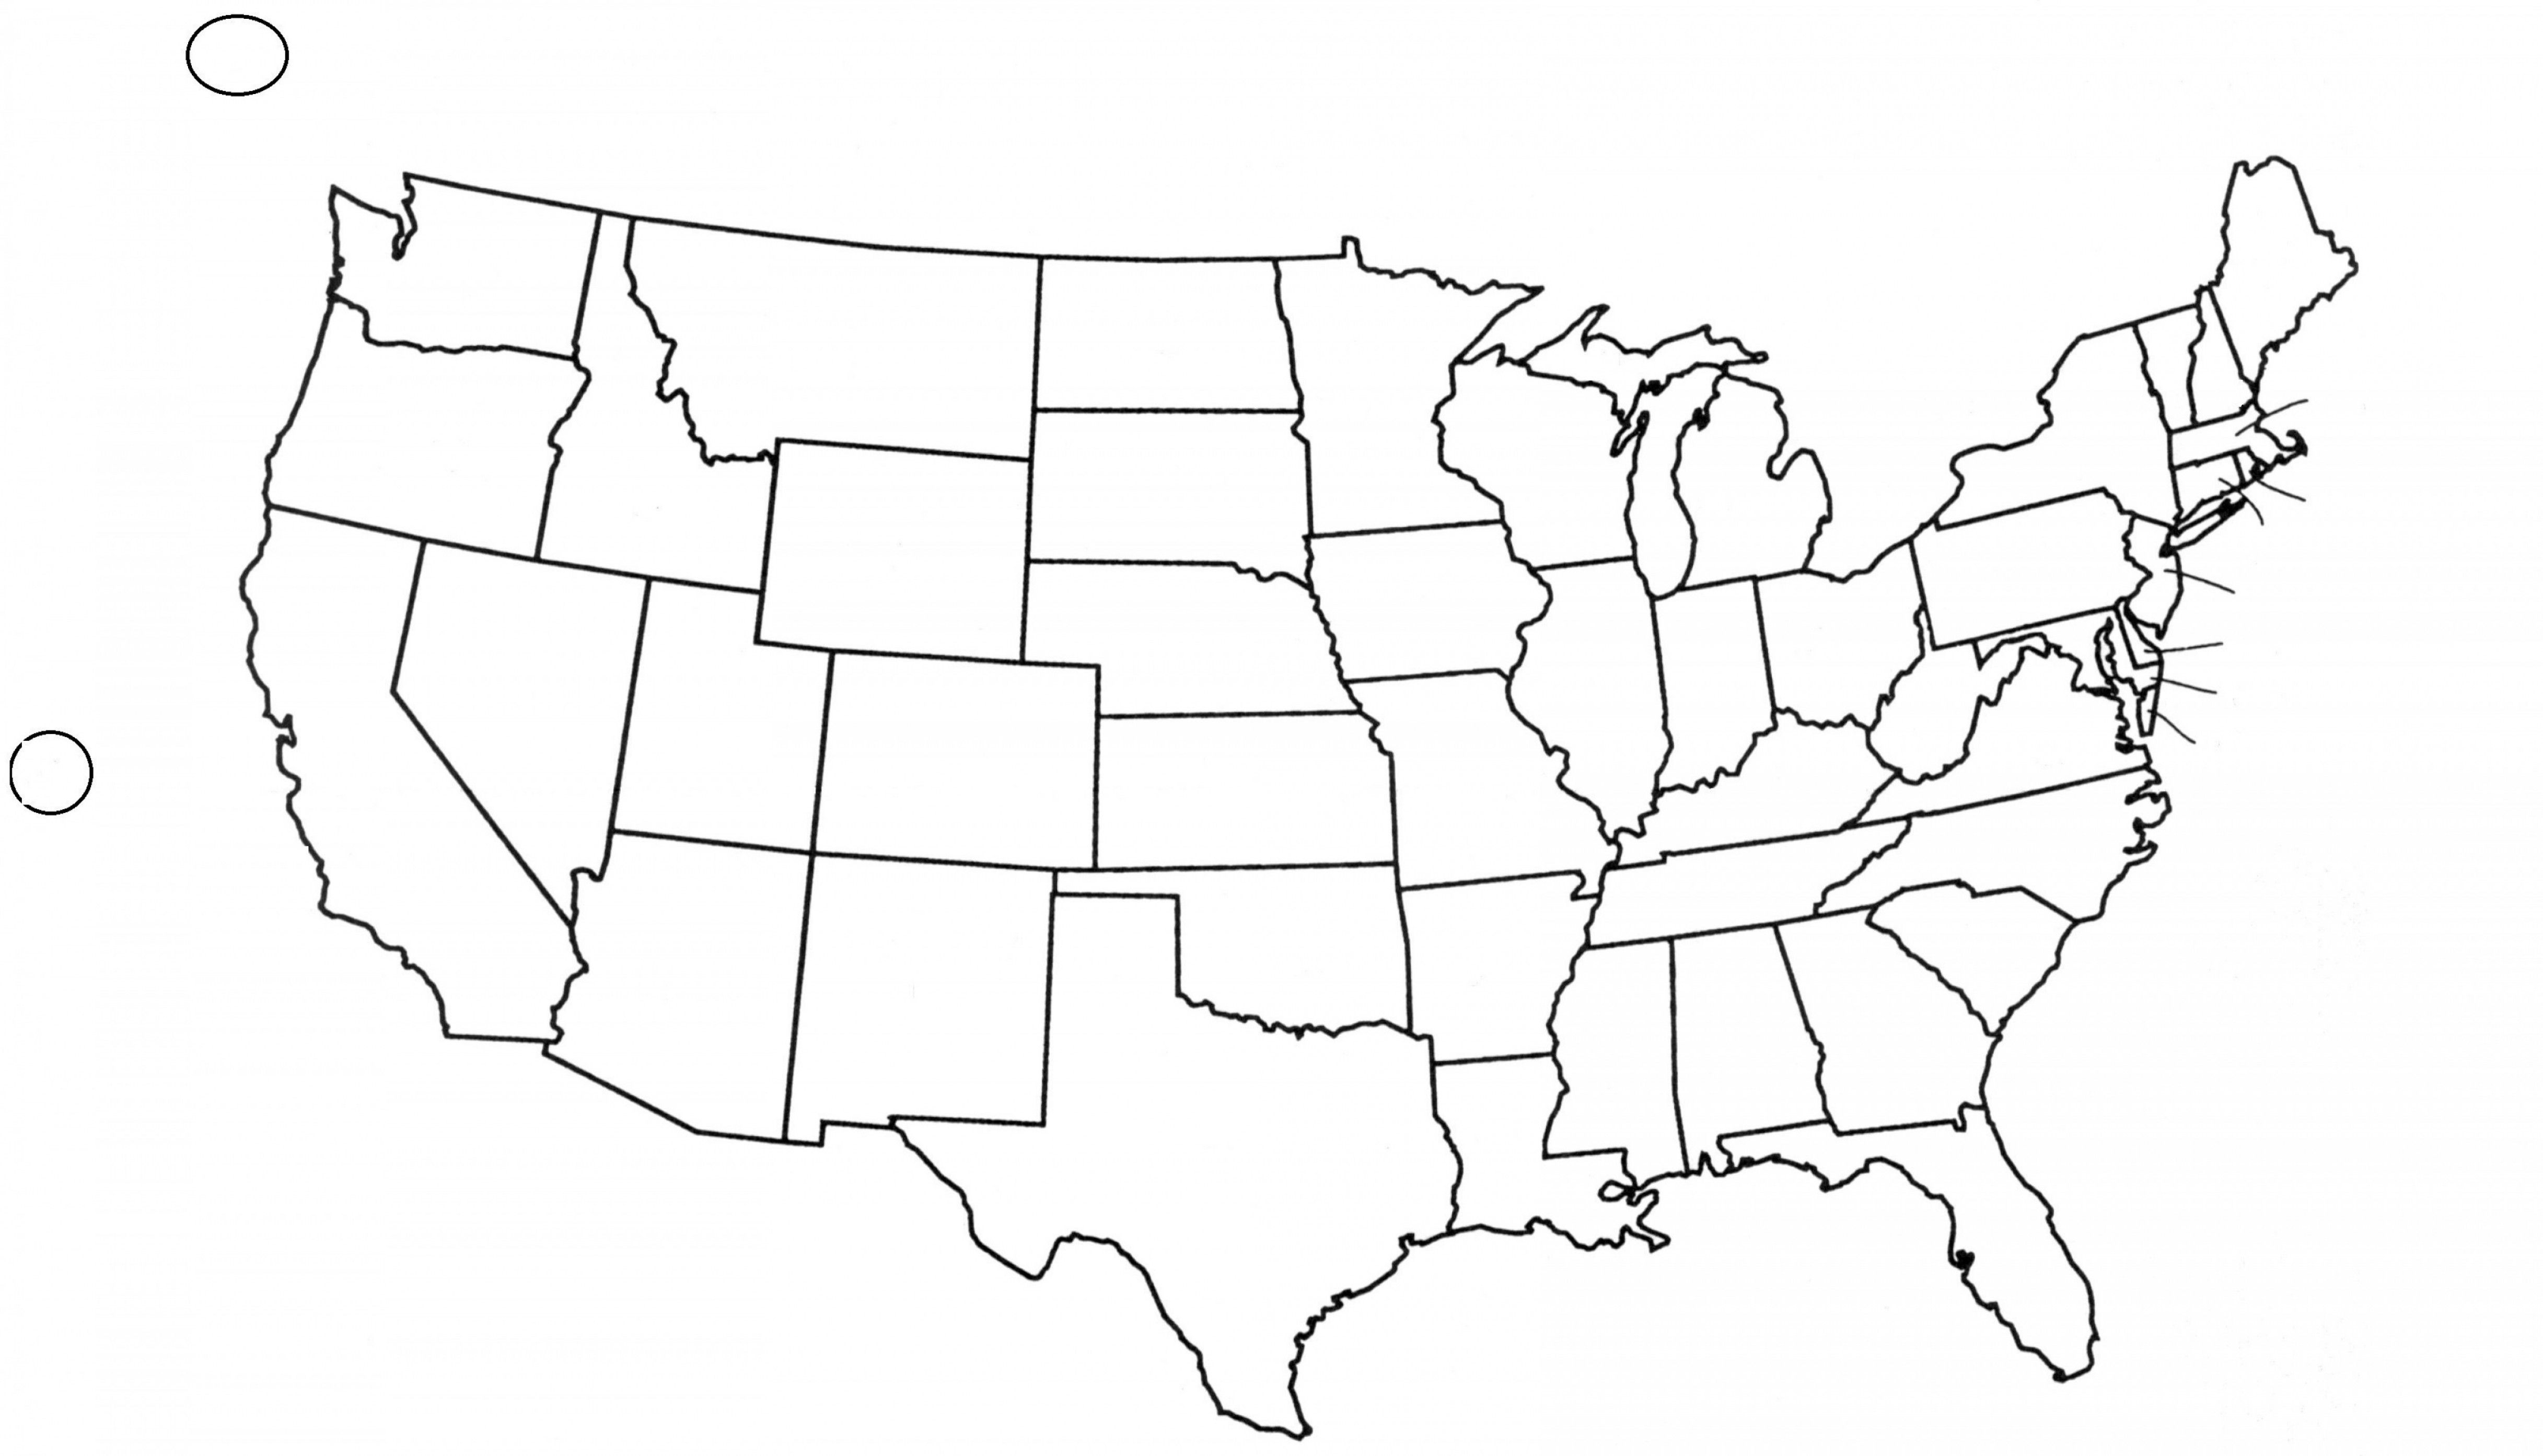 White united states map clipart black and white Clipart Of United States Map Outline | SOIDERGI black and white